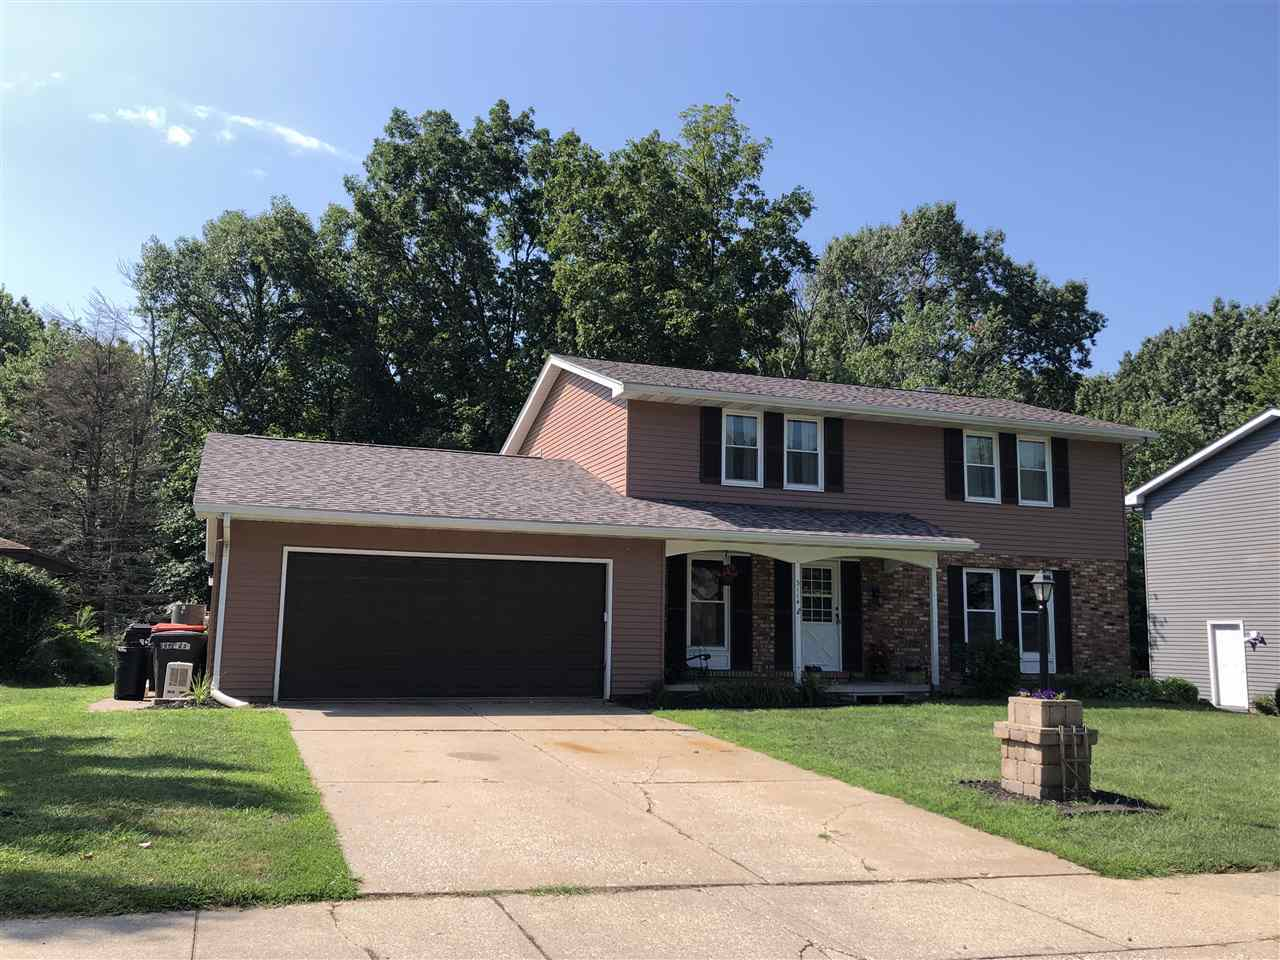 $169,900 - 4Br/3Ba -  for Sale in Wardcliffe Knolls, Peoria